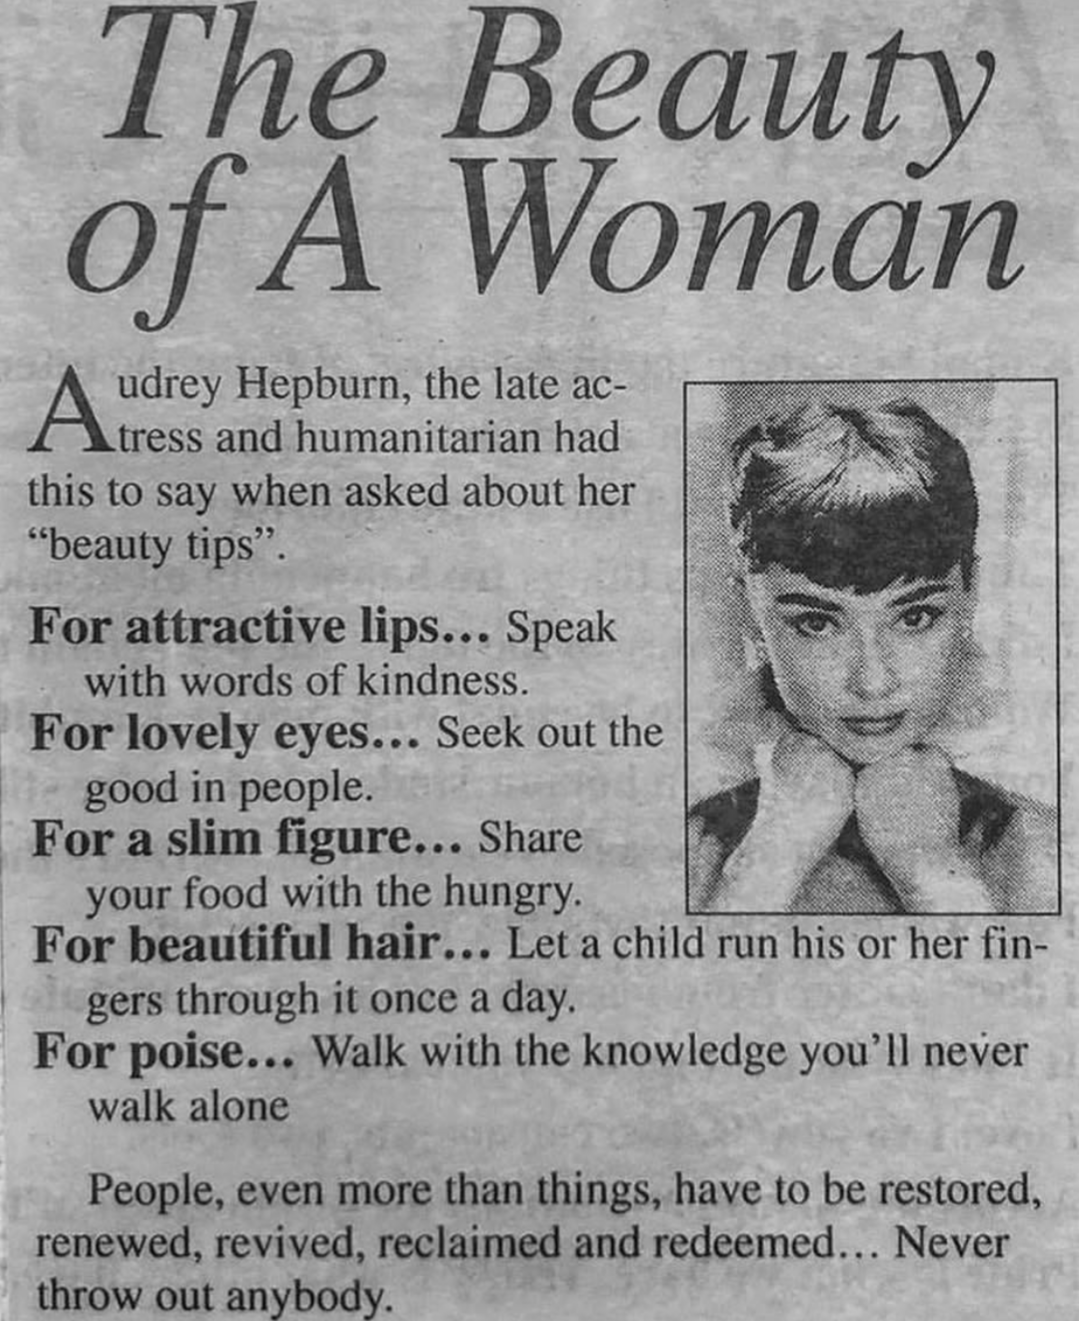 [Image] Audrey Hepburn's take on beauty is beautiful